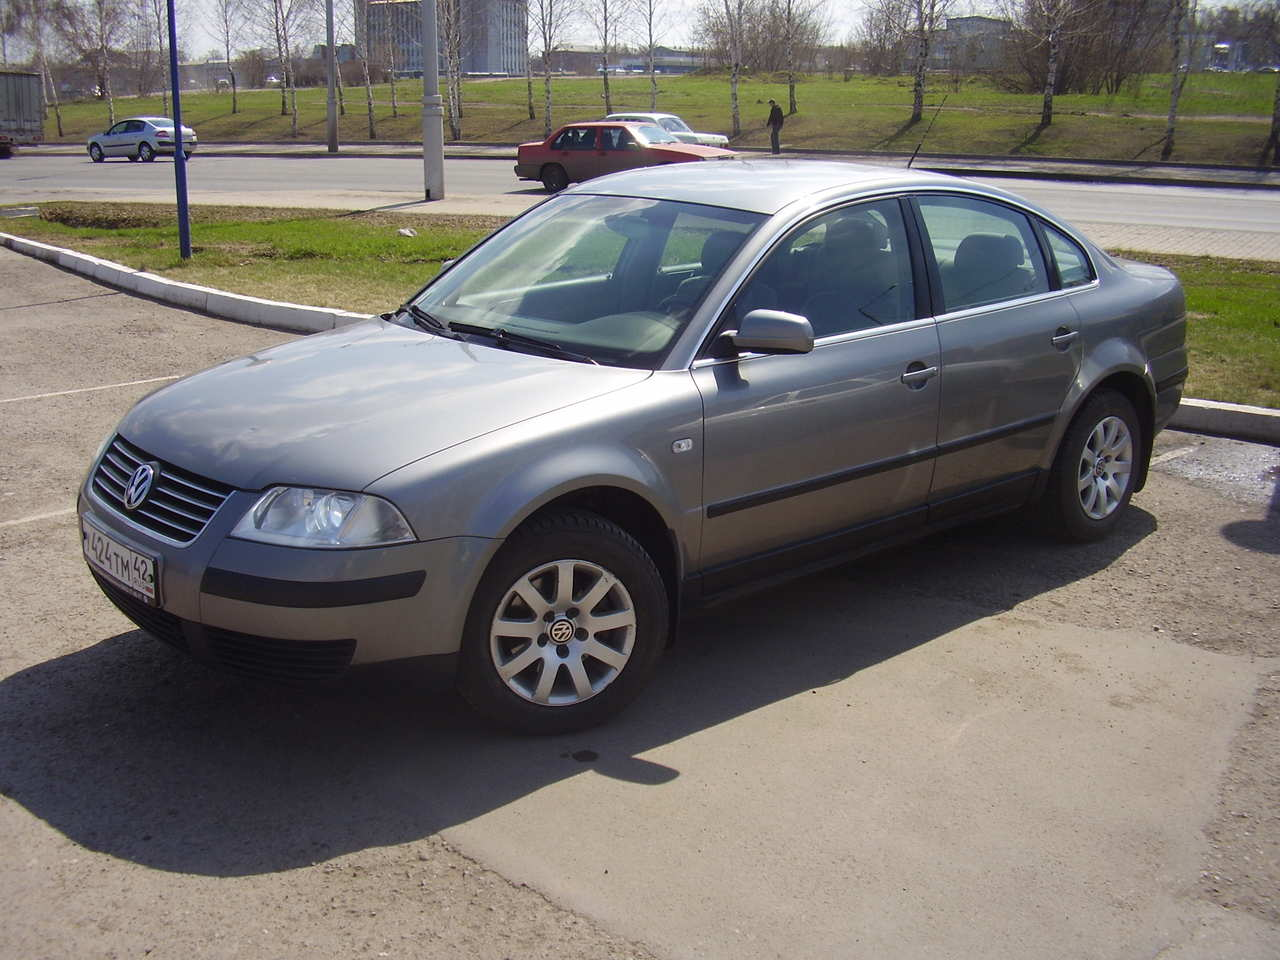 used 2003 volkswagen passat photos 2000cc gasoline ff manual for sale. Black Bedroom Furniture Sets. Home Design Ideas